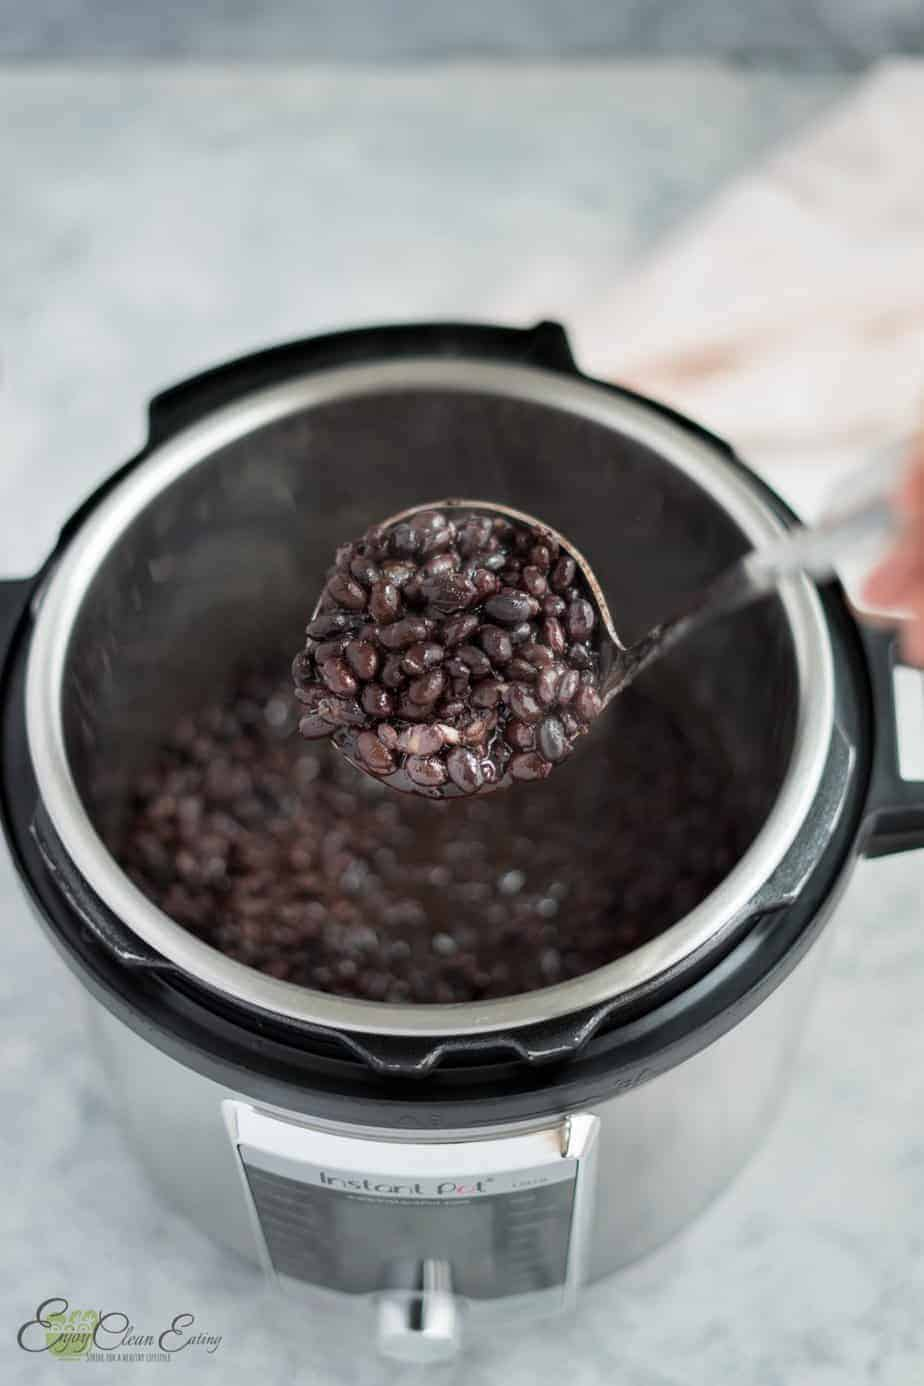 holding a soup serving spoon full of the fresh instant pot black beans